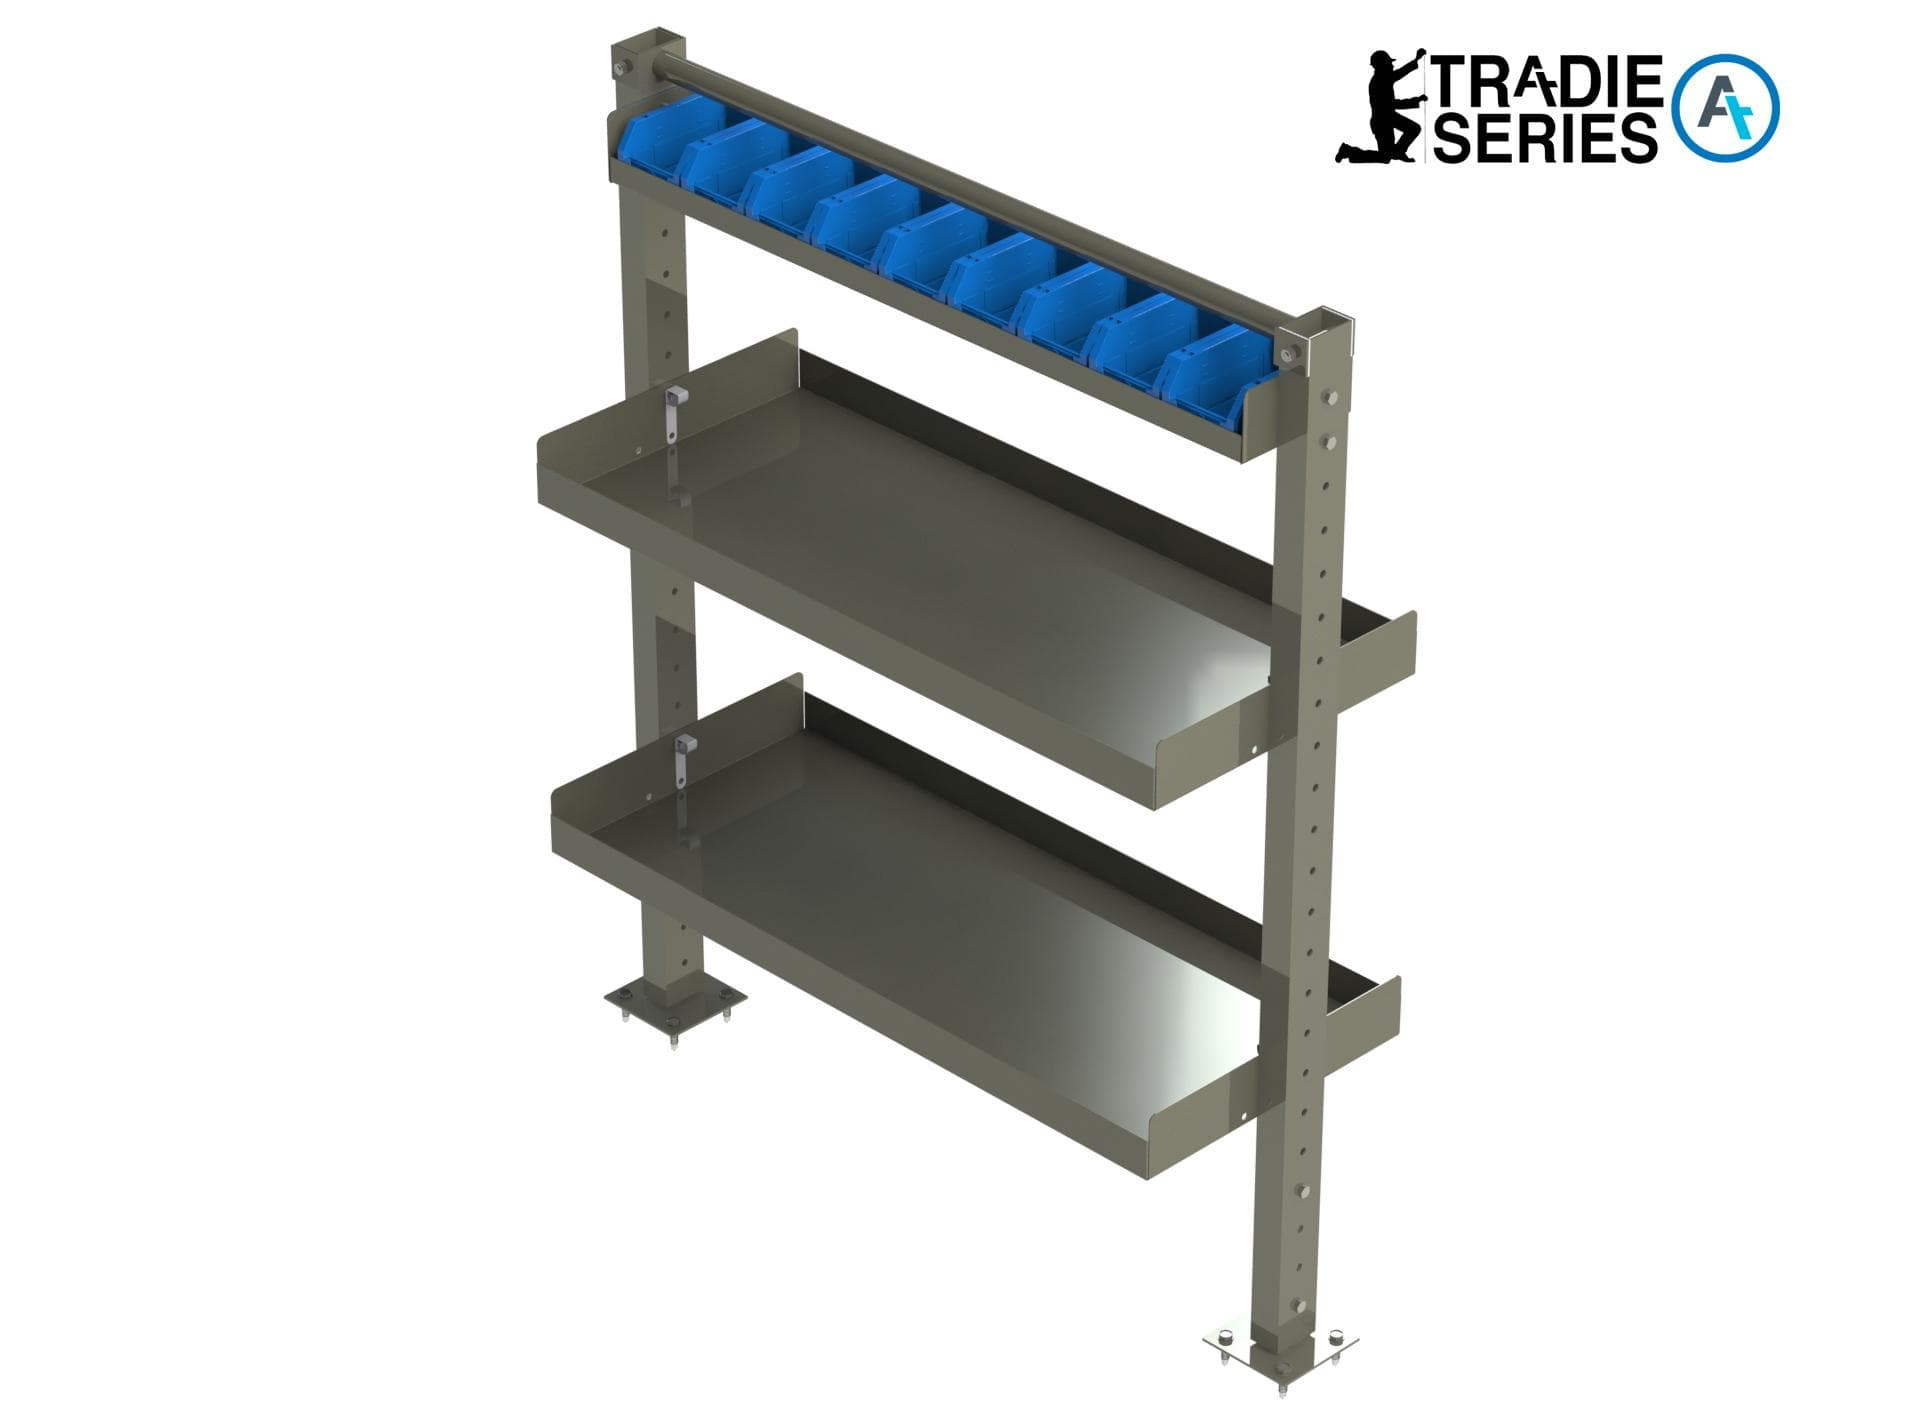 Trade Shelving folding shelf1 jpg